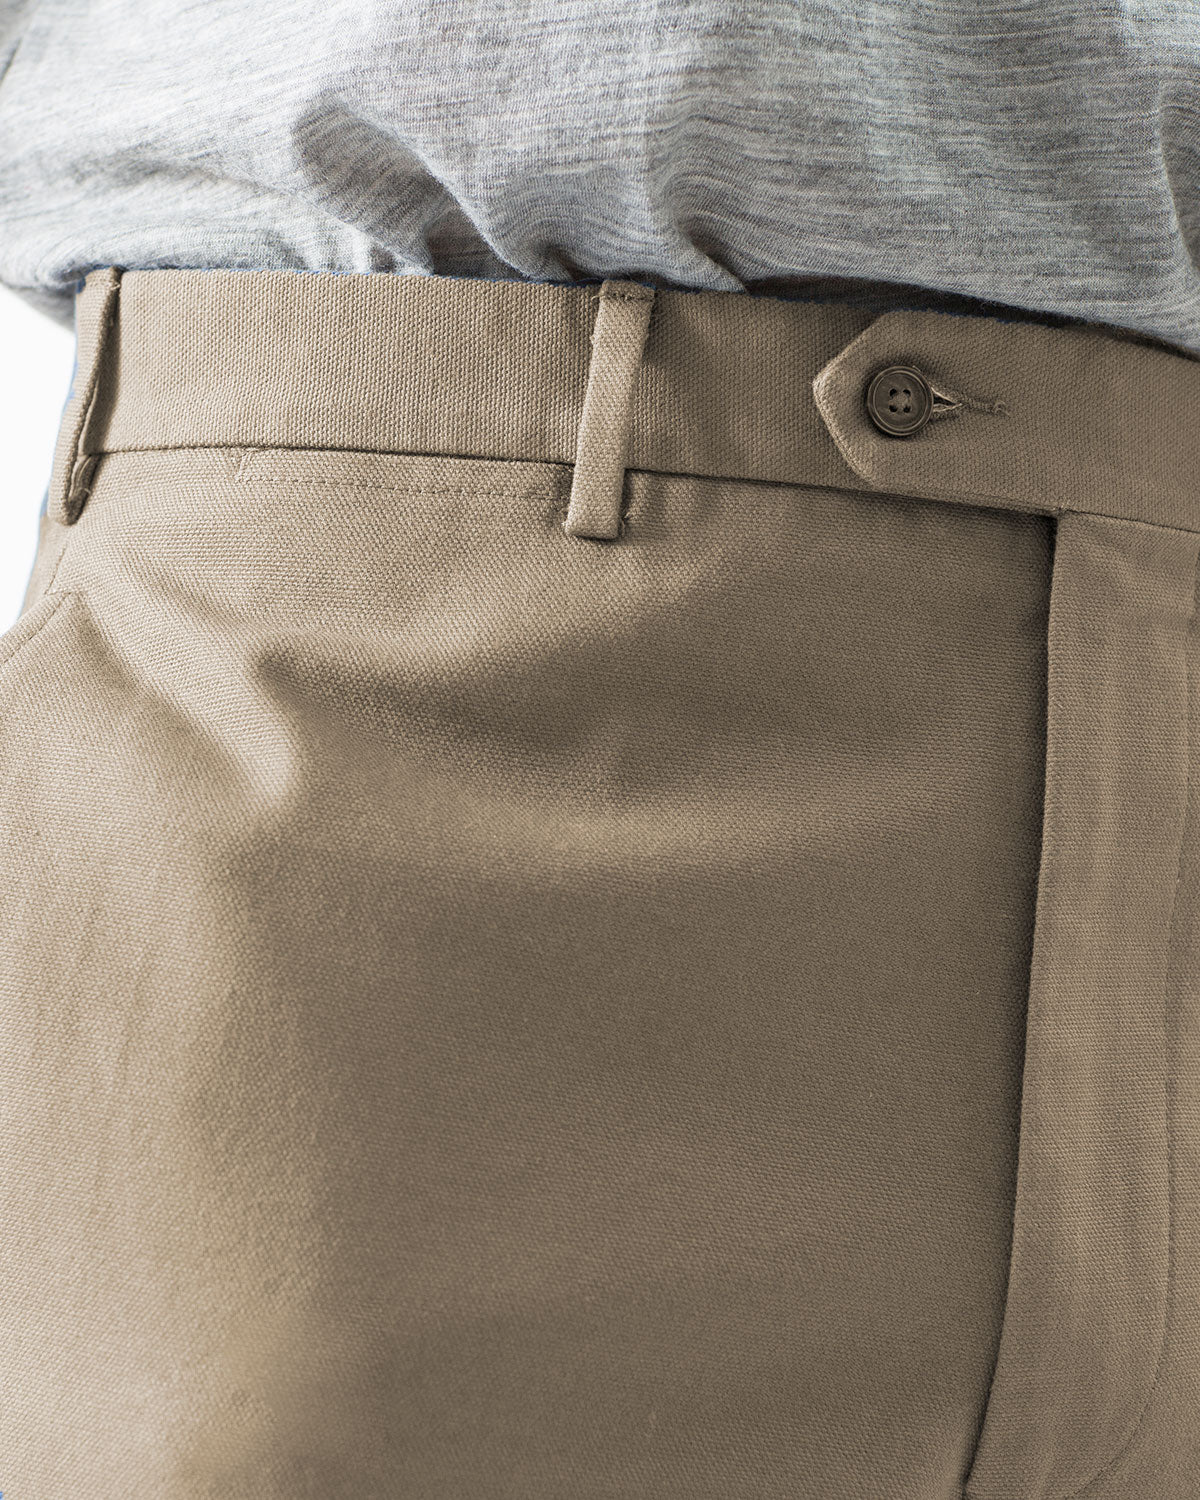 12oz Cotton Canvas Chino, Stone